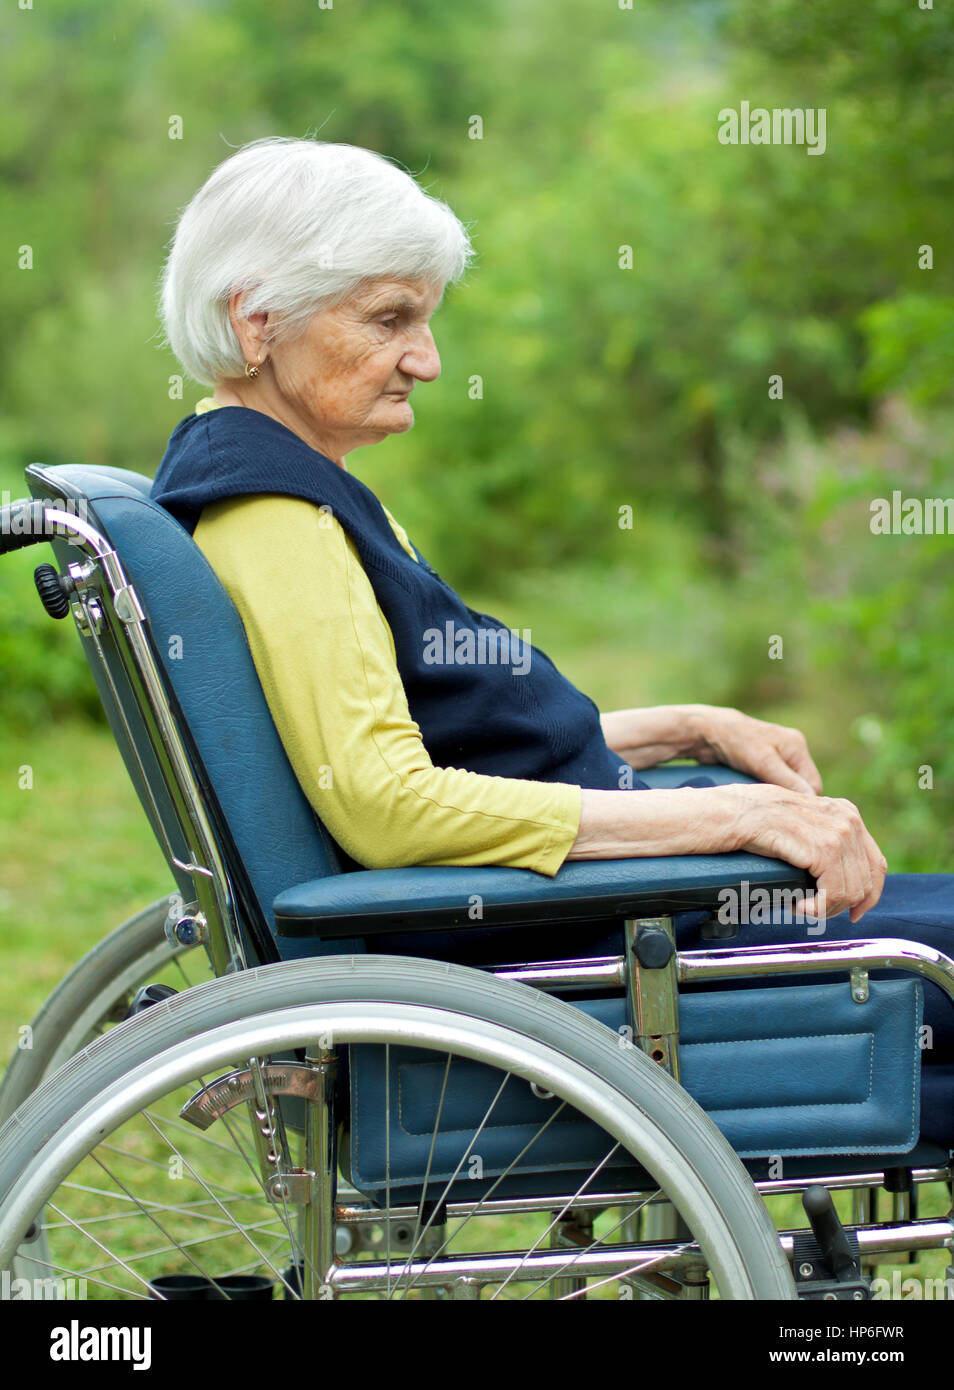 Handicapped sad elderly woman sitting in a wheelchair - Stock Image